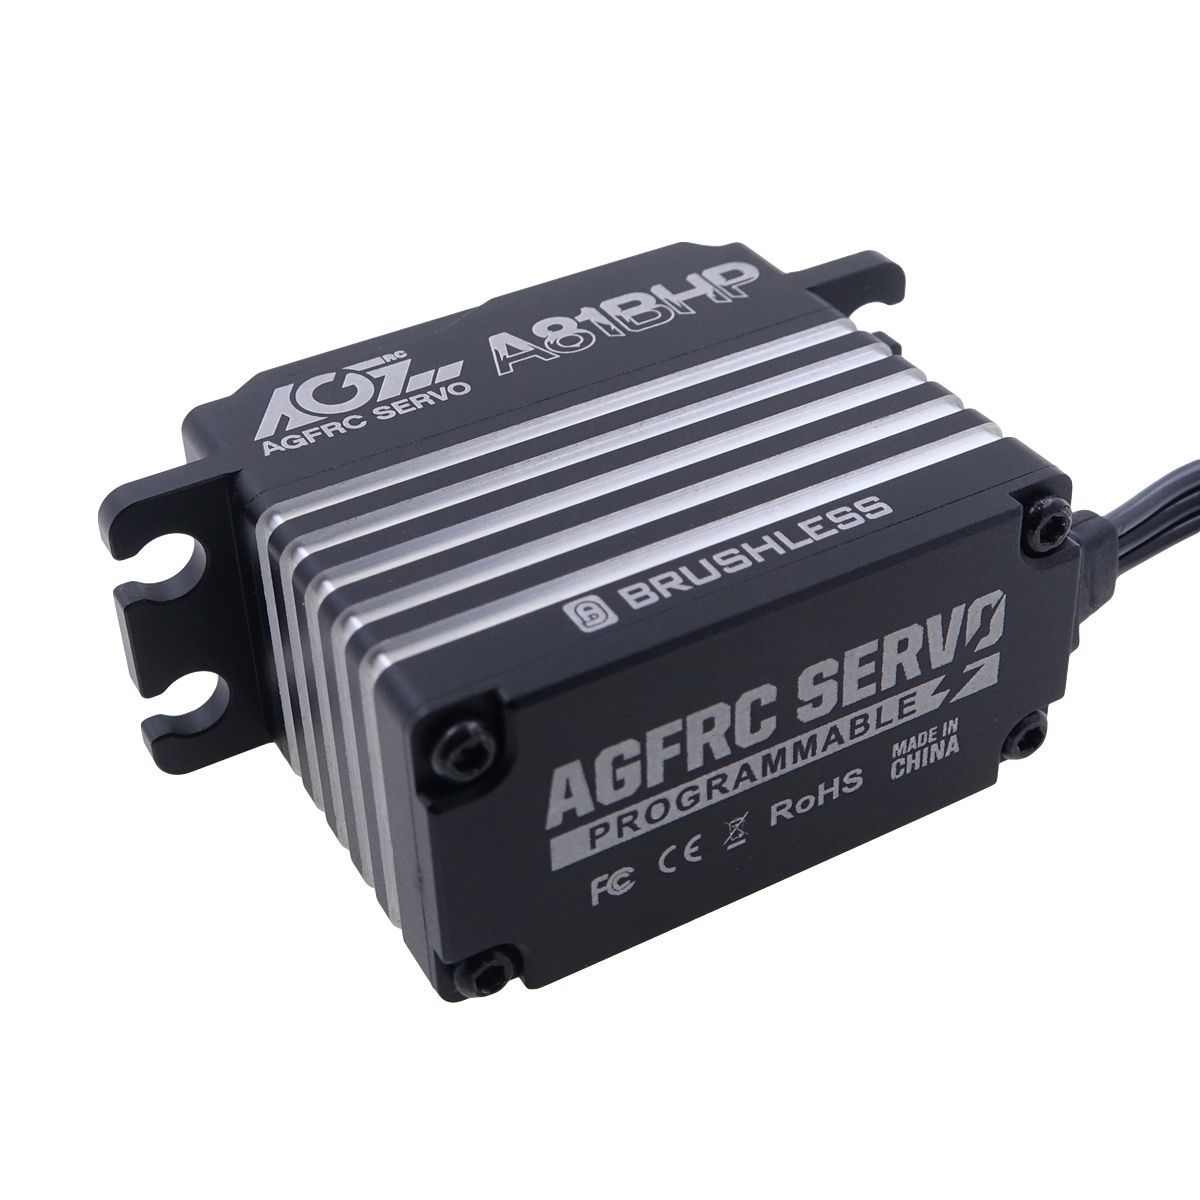 AGFRC A81BHP 2s Lipo Capatible 23KG 0.052Sec HV Programmable Brushless Digital Standard Size RC Servo Motor For RC Drift Rudder Crawler Buggy Truck